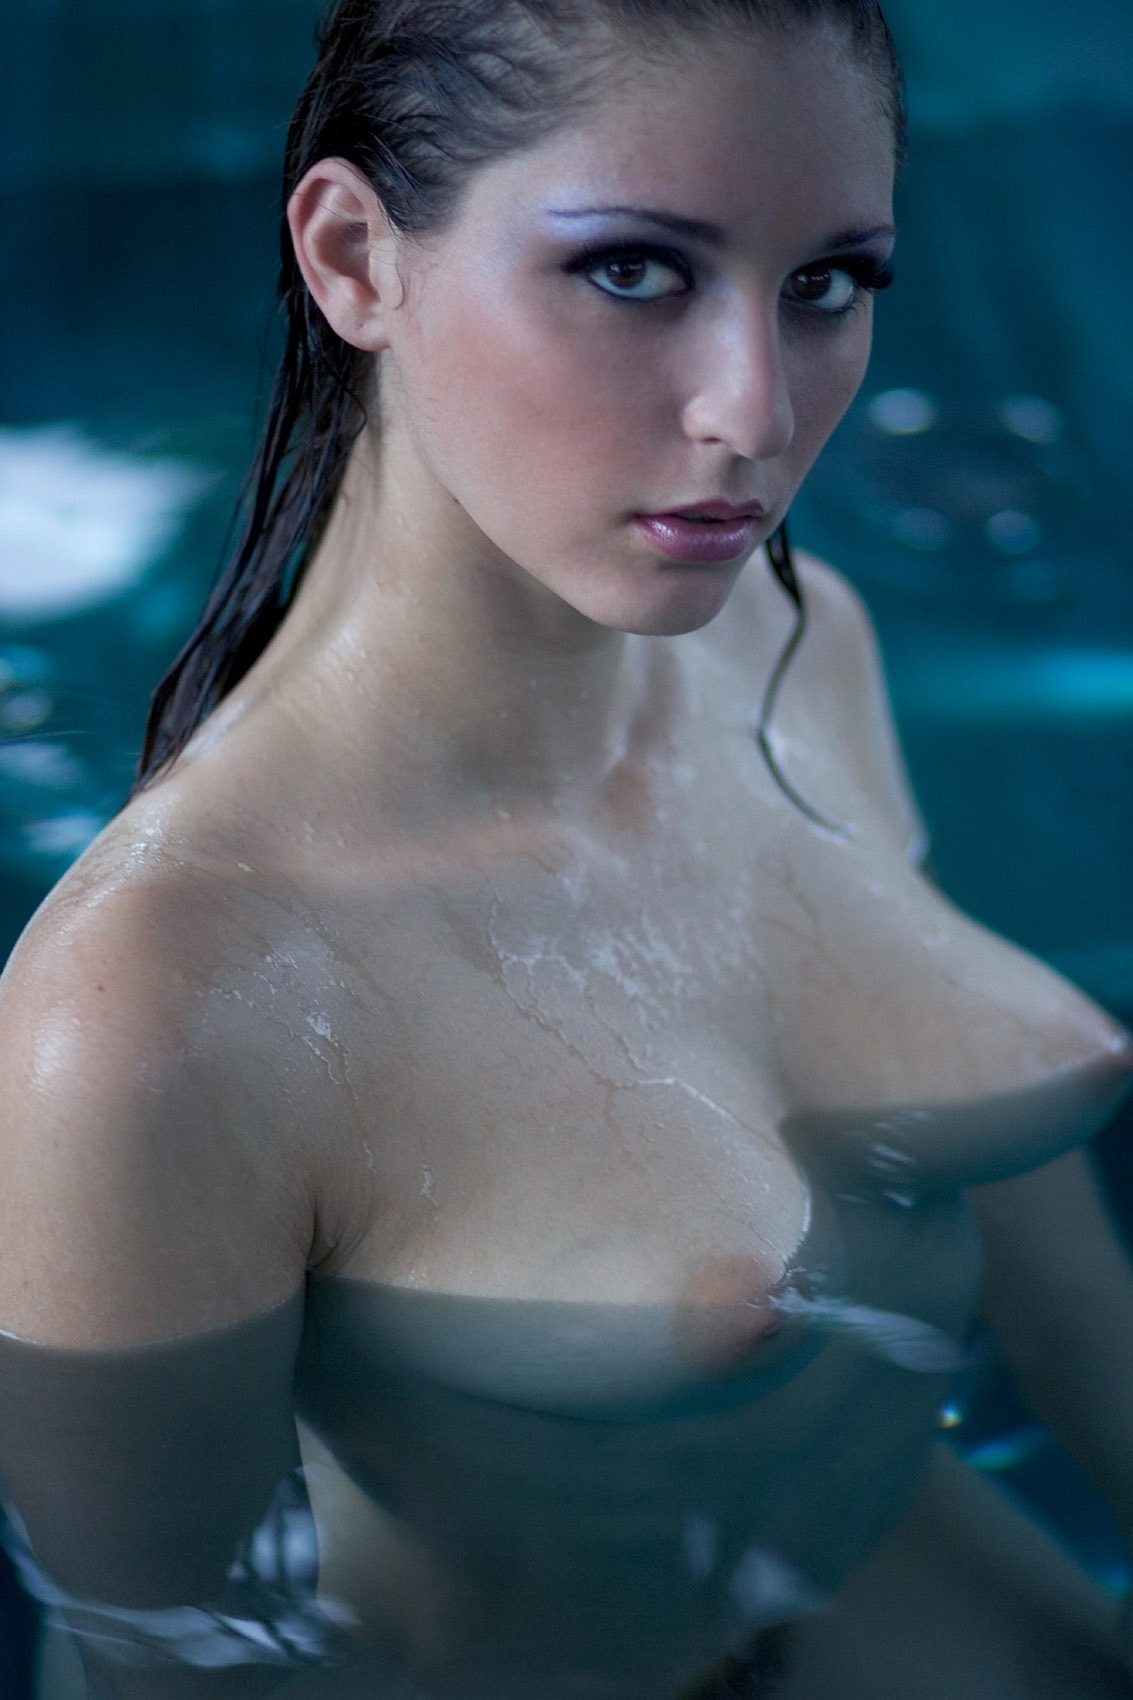 carlotta-champagne-nude-tits-jacuzzi-wet-20